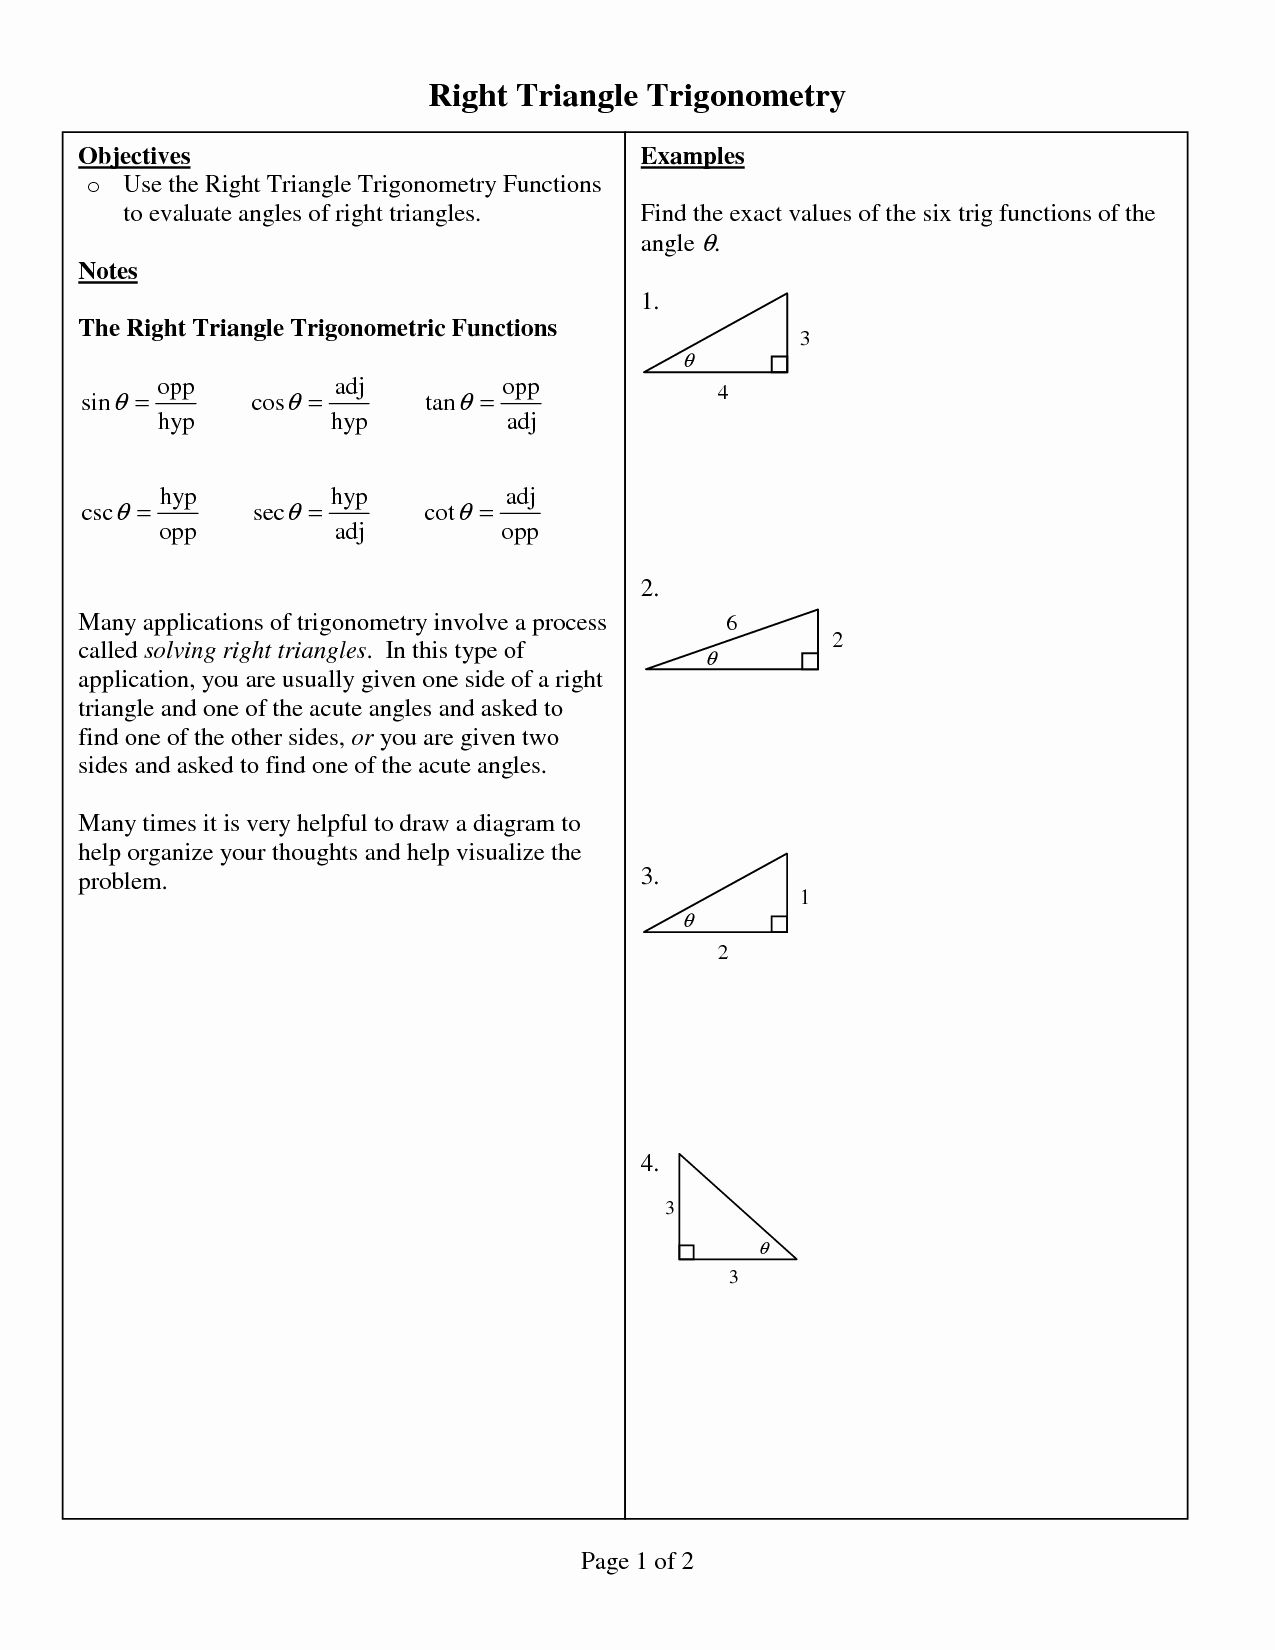 Right Triangle Trigonometry Worksheet Inspirational 11